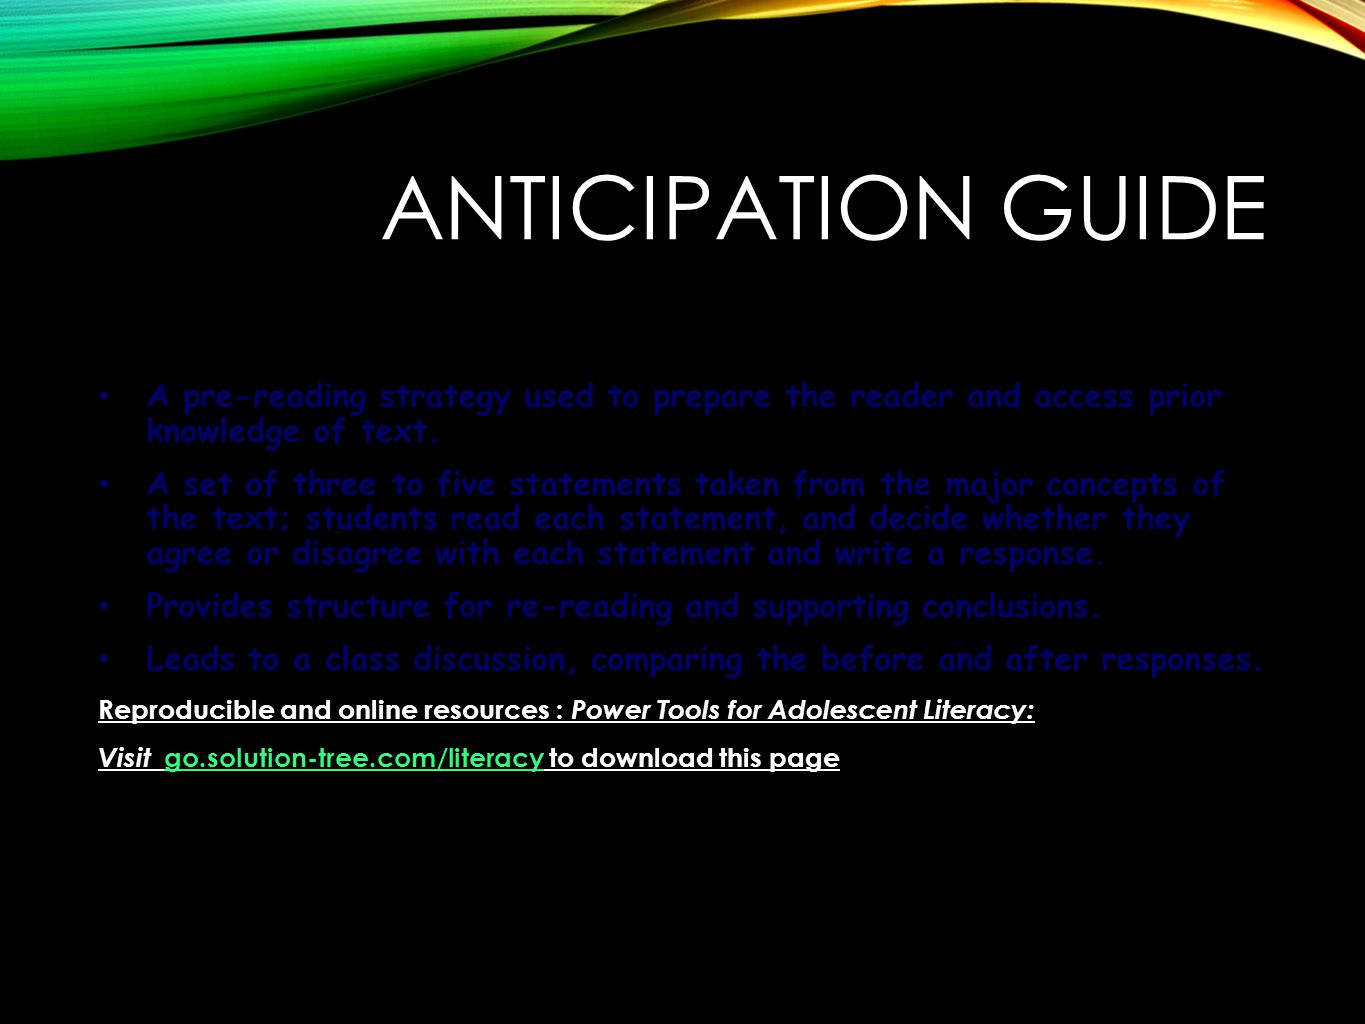 ANTICIPATION GUIDE A pre-reading strategy used to prepare the reader and access prior knowledge of text.